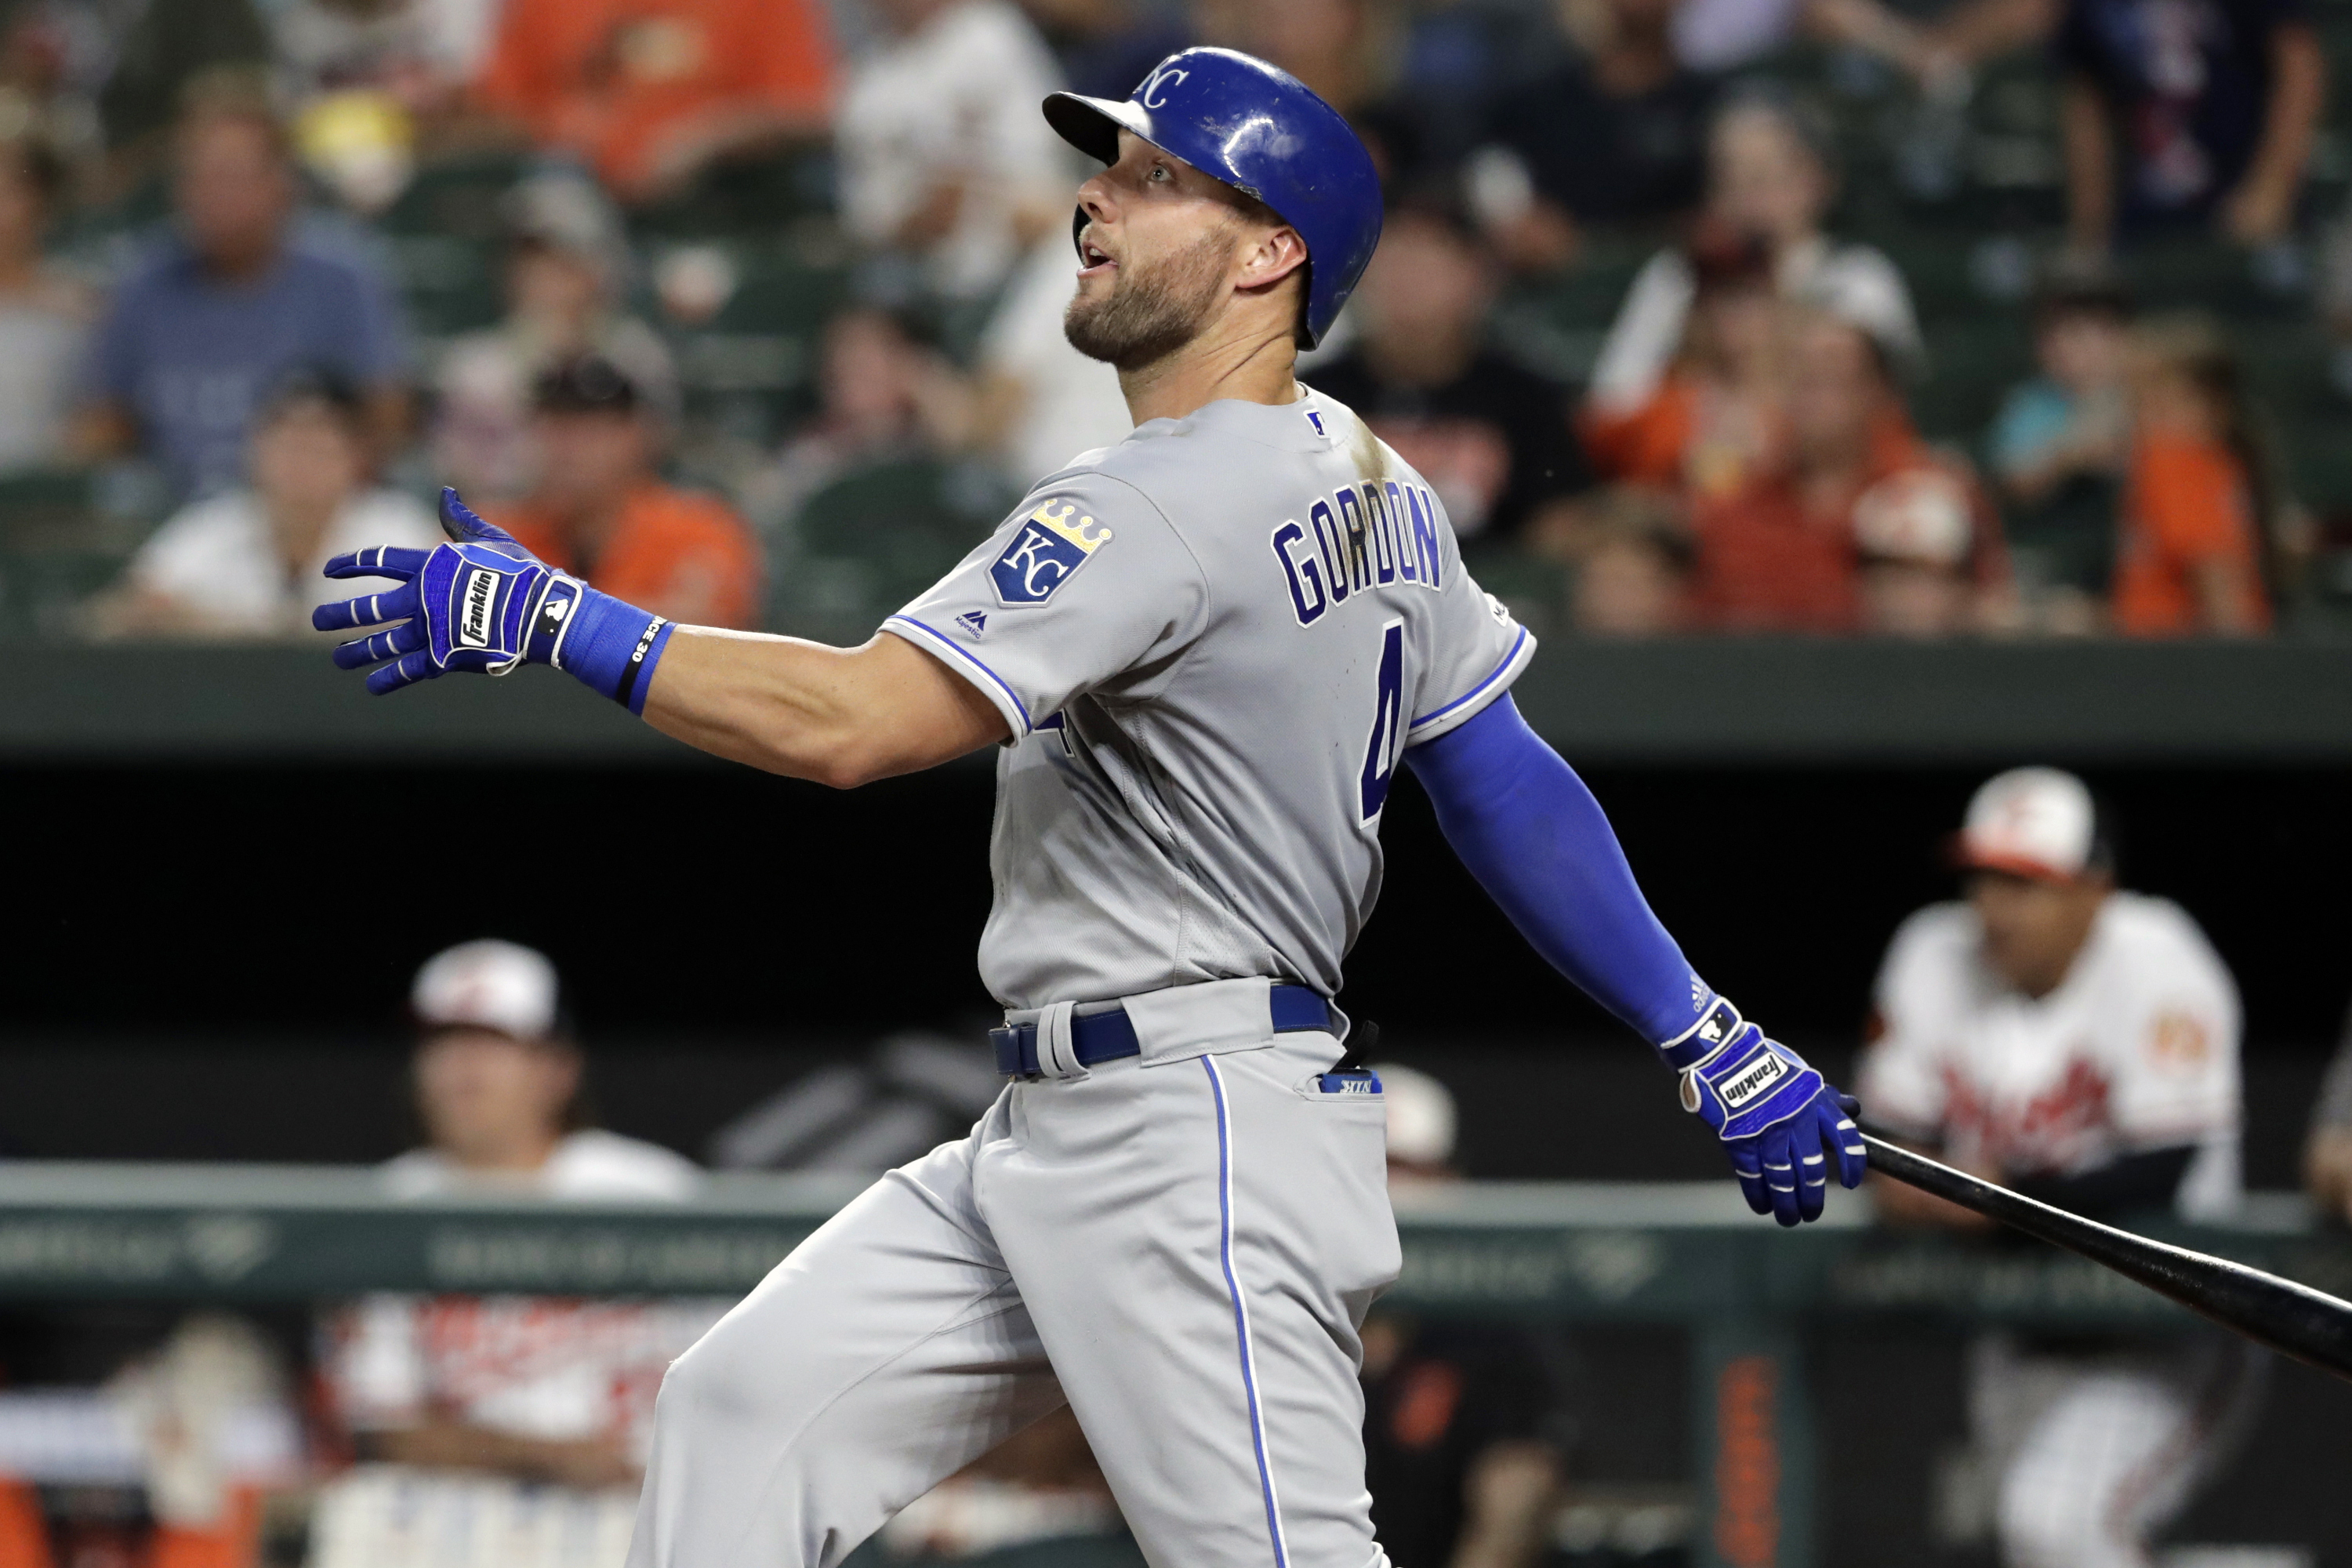 Royals' Alex Gordon agrees to accept trades starting June 16